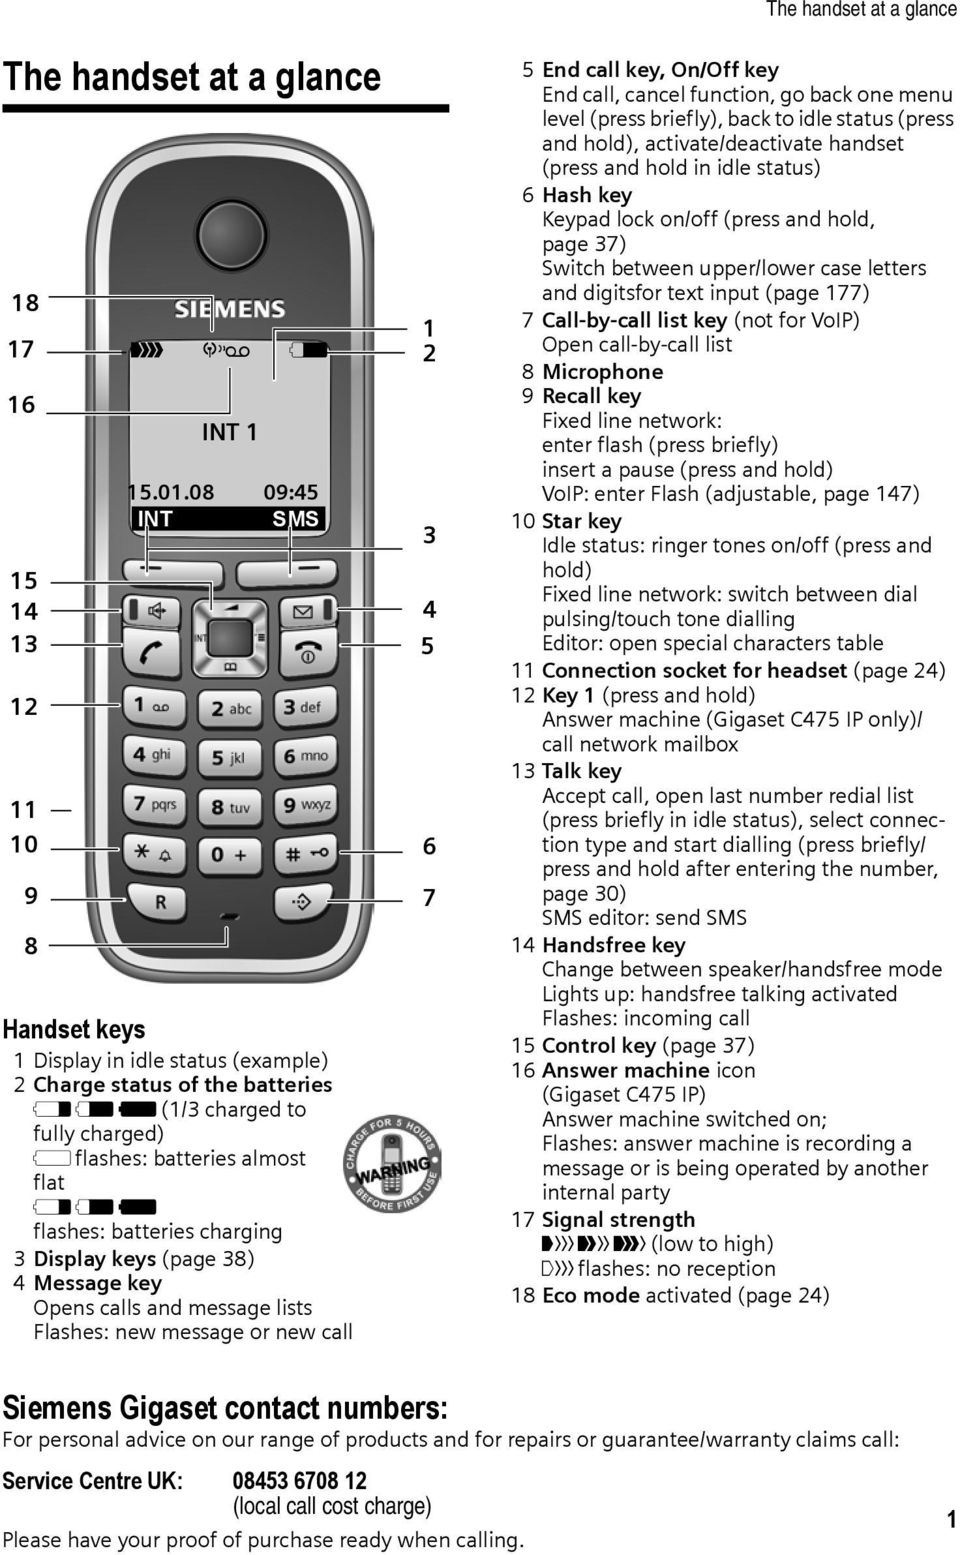 charging 3 Display keys (page 38) 4 Message key Opens calls and message lists Flashes: new message or new call 1 2 3 4 5 6 7 The handset at a glance 5 End call key, On/Off key End call, cancel